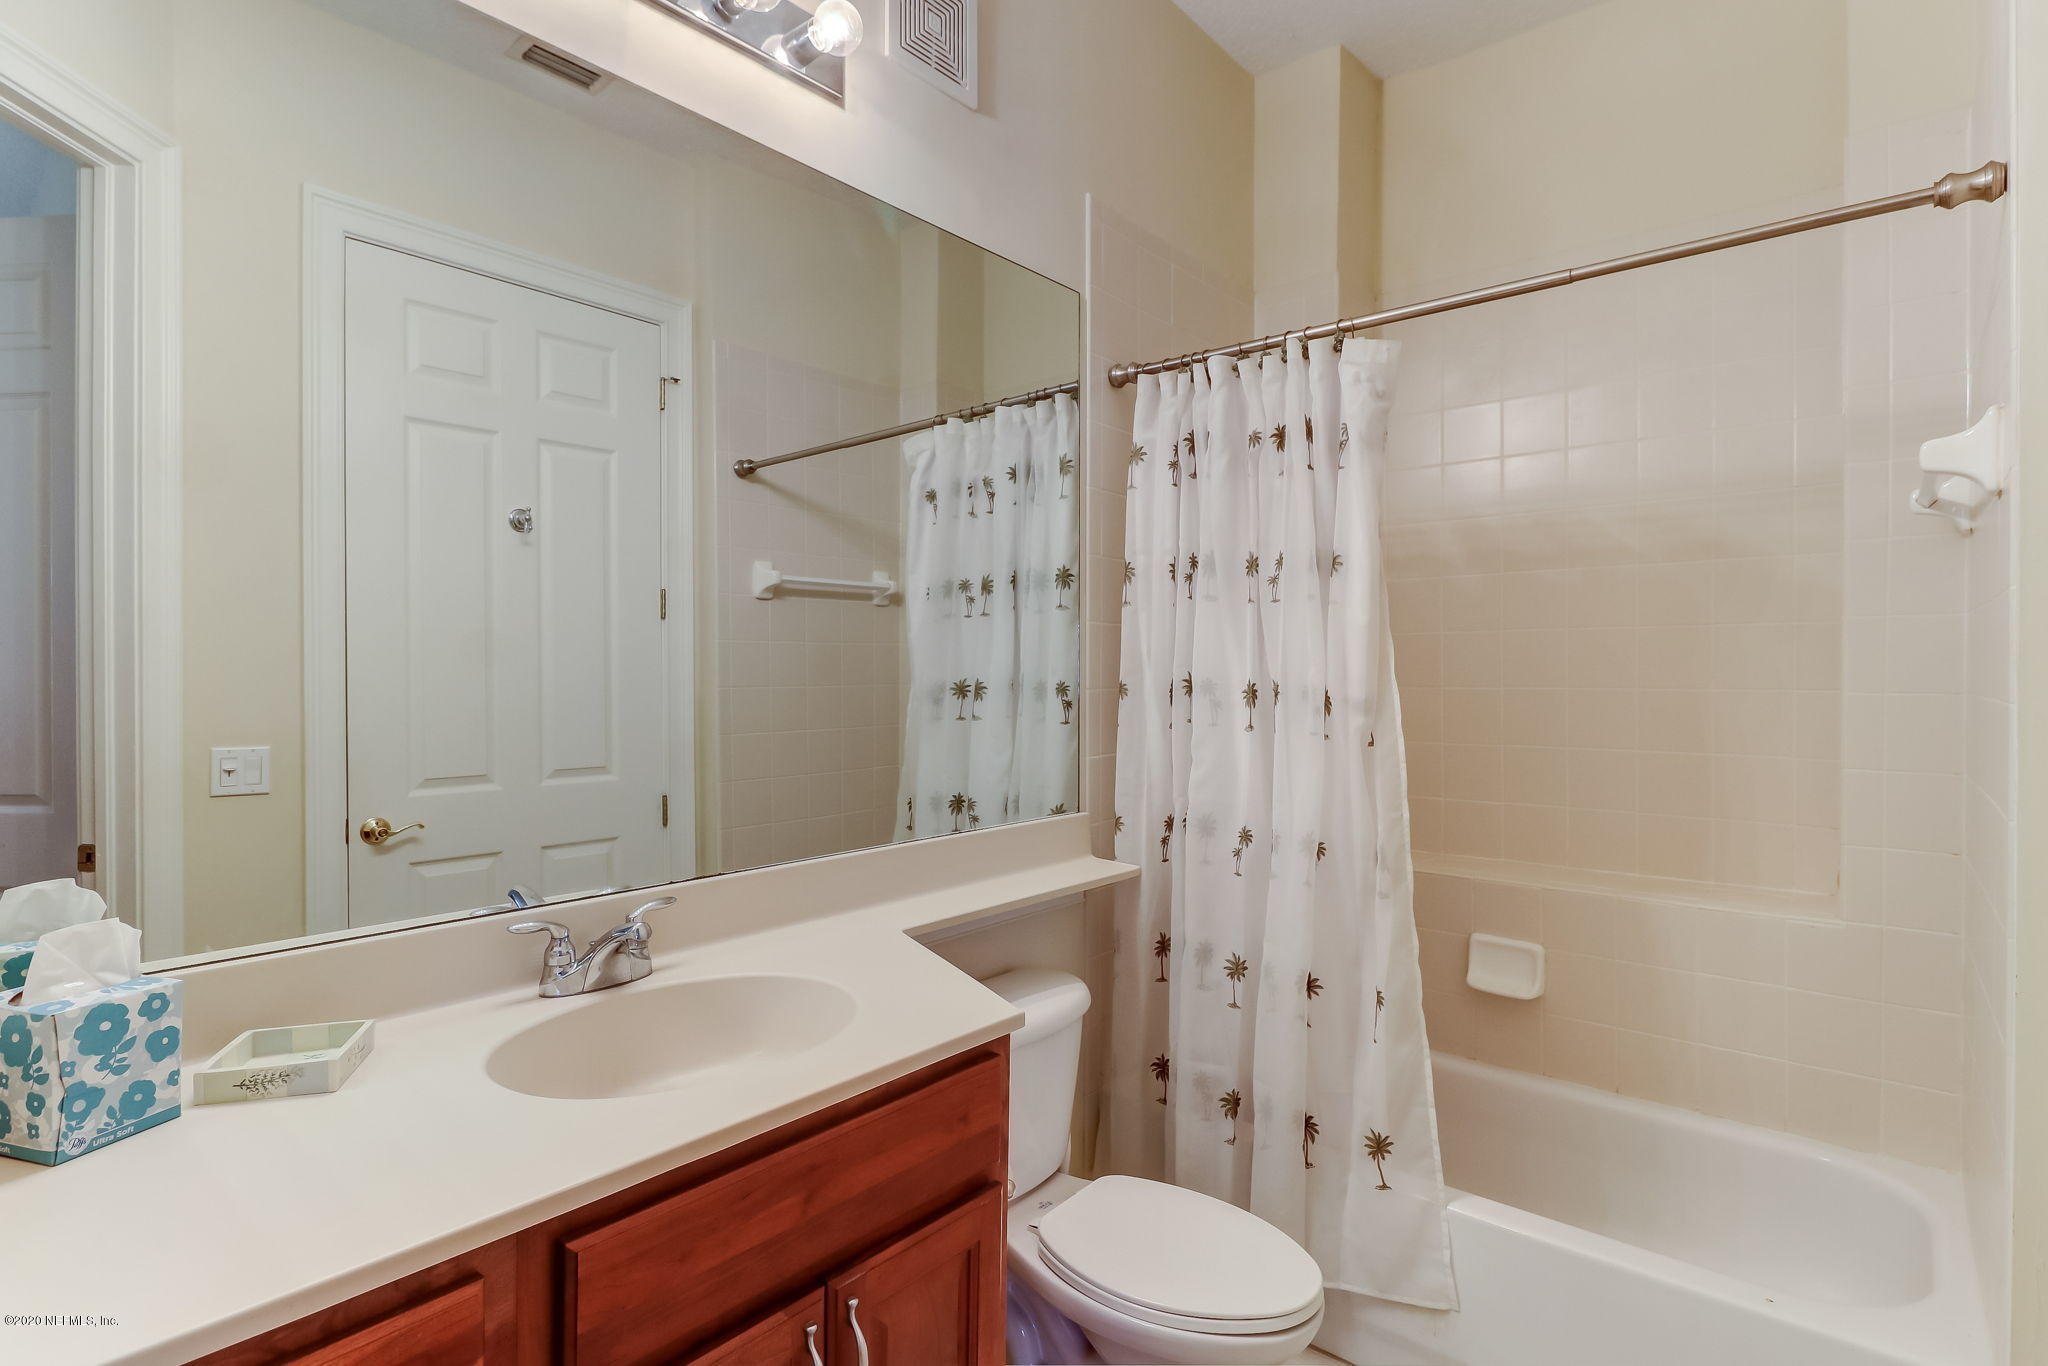 95057 BARCLAY, FERNANDINA BEACH, FLORIDA 32034, 2 Bedrooms Bedrooms, ,2 BathroomsBathrooms,Residential,For sale,BARCLAY,1053660